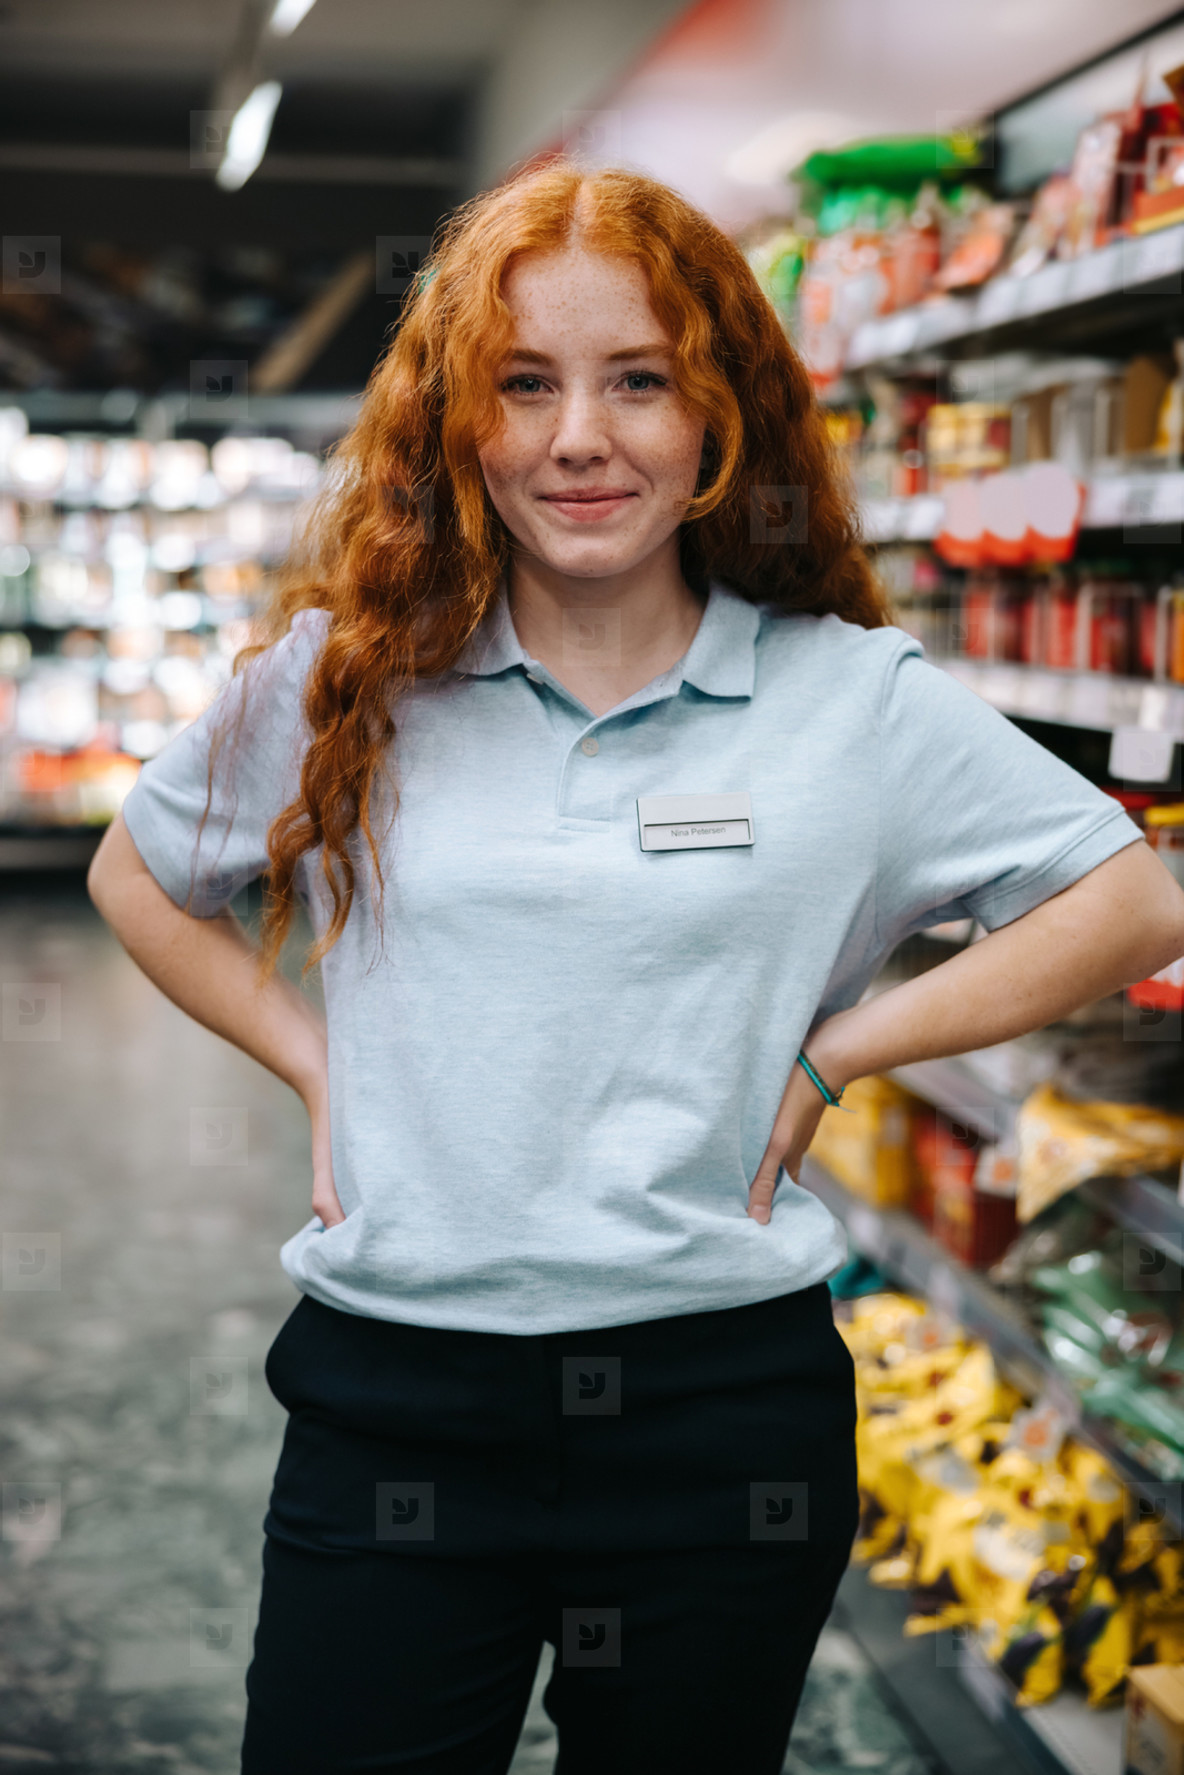 Young worker at supermarket